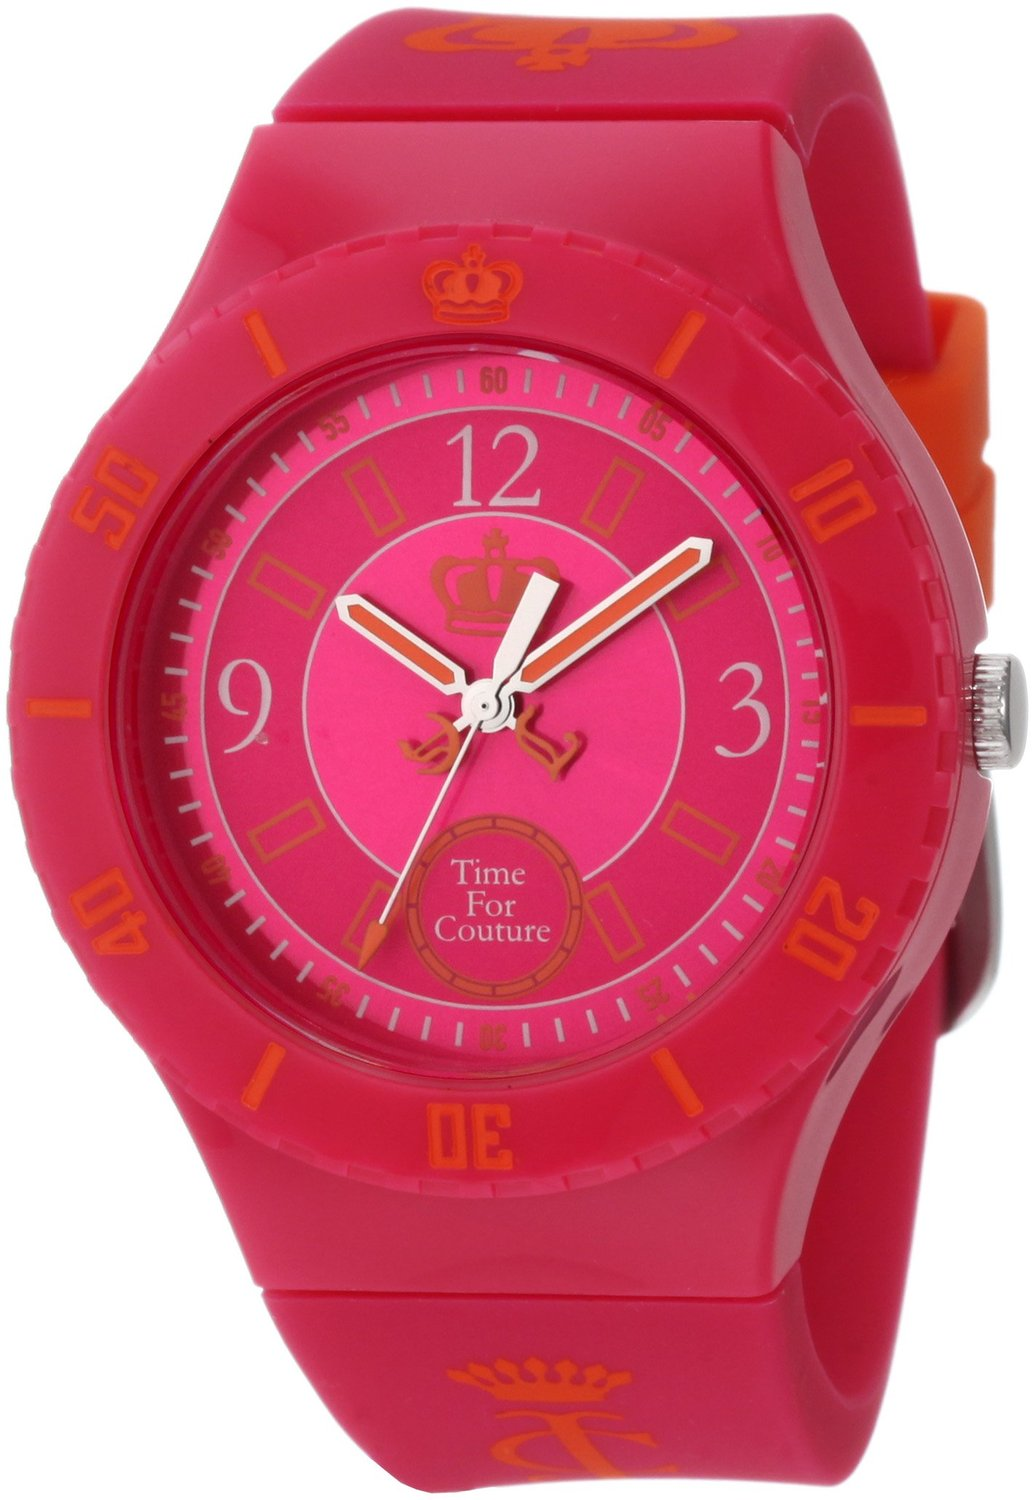 Часы JUICY Couture  Juicycouture 1900823